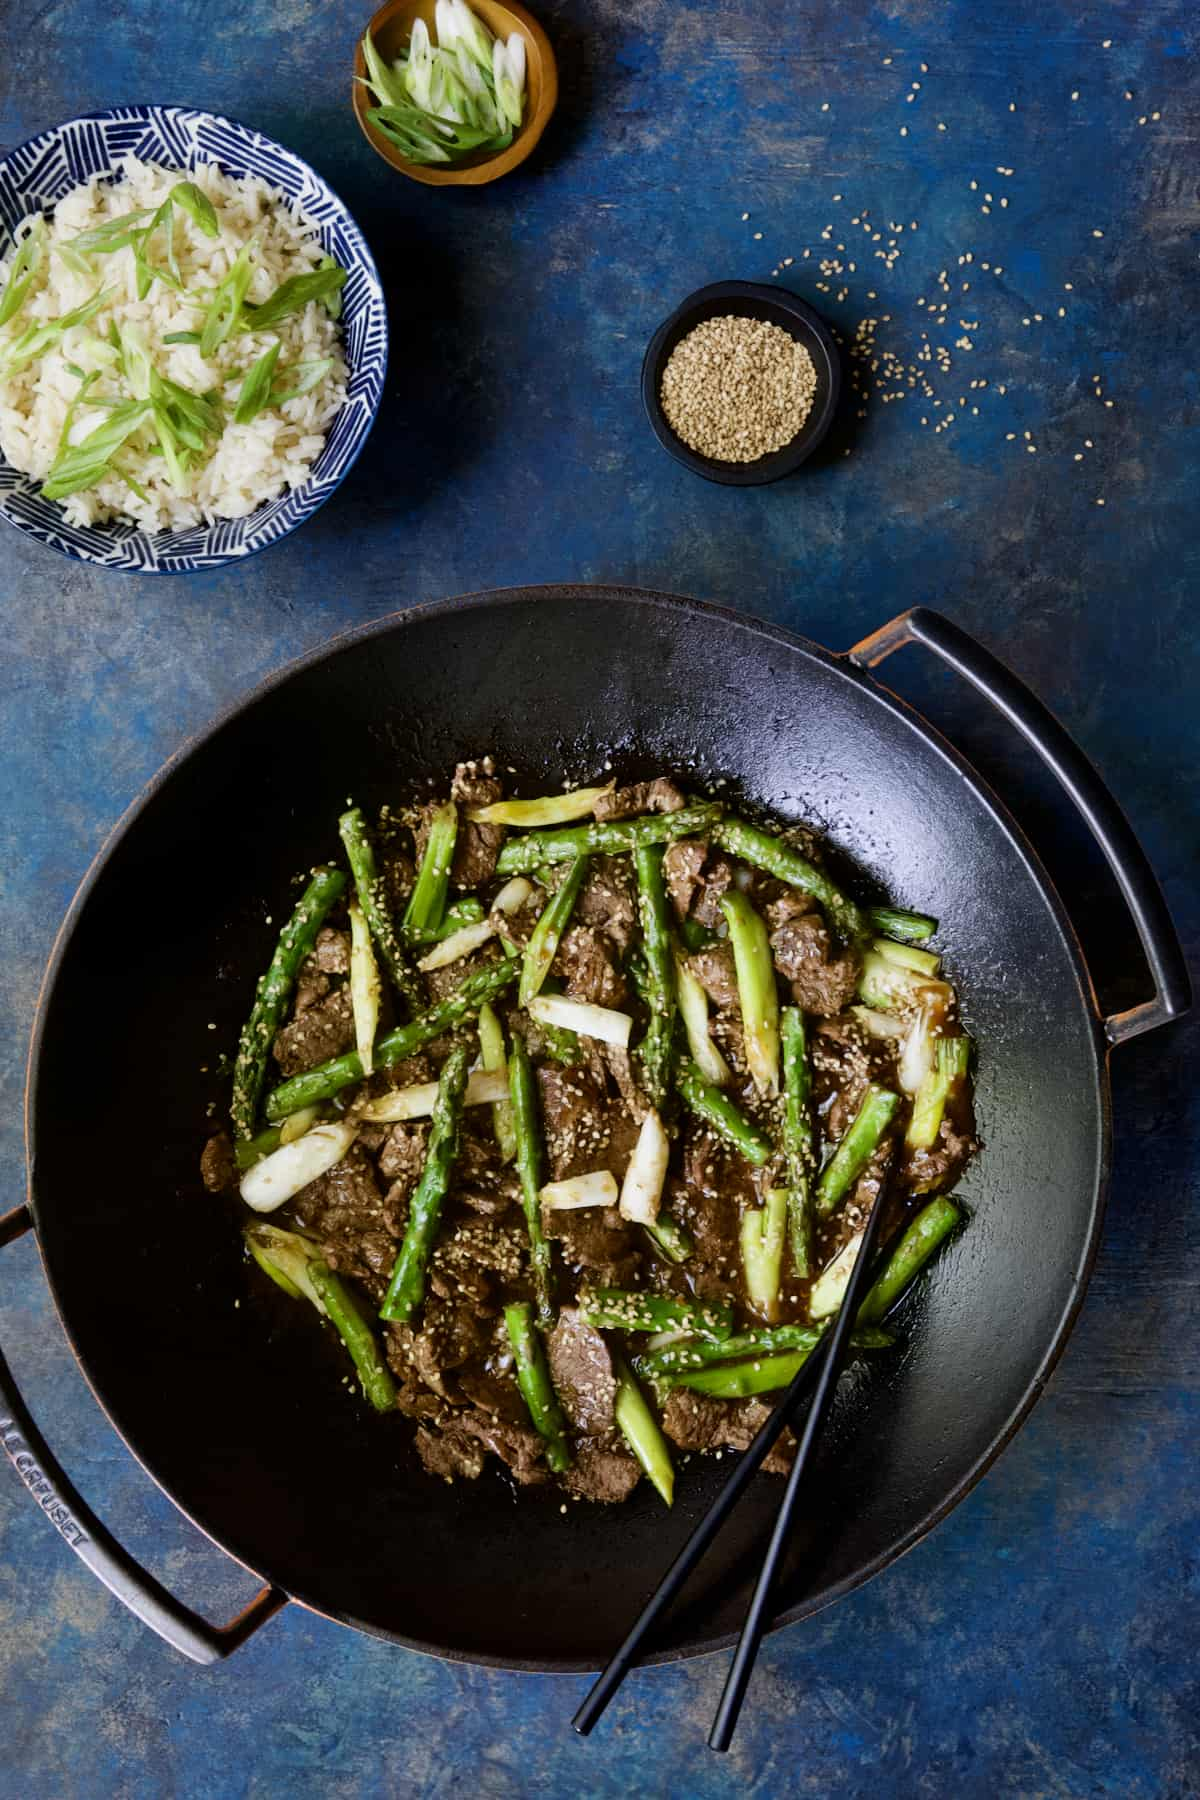 Photo of Sesame Beef and Asparagus Stir-Fry in cast iron wok on bright blue background.